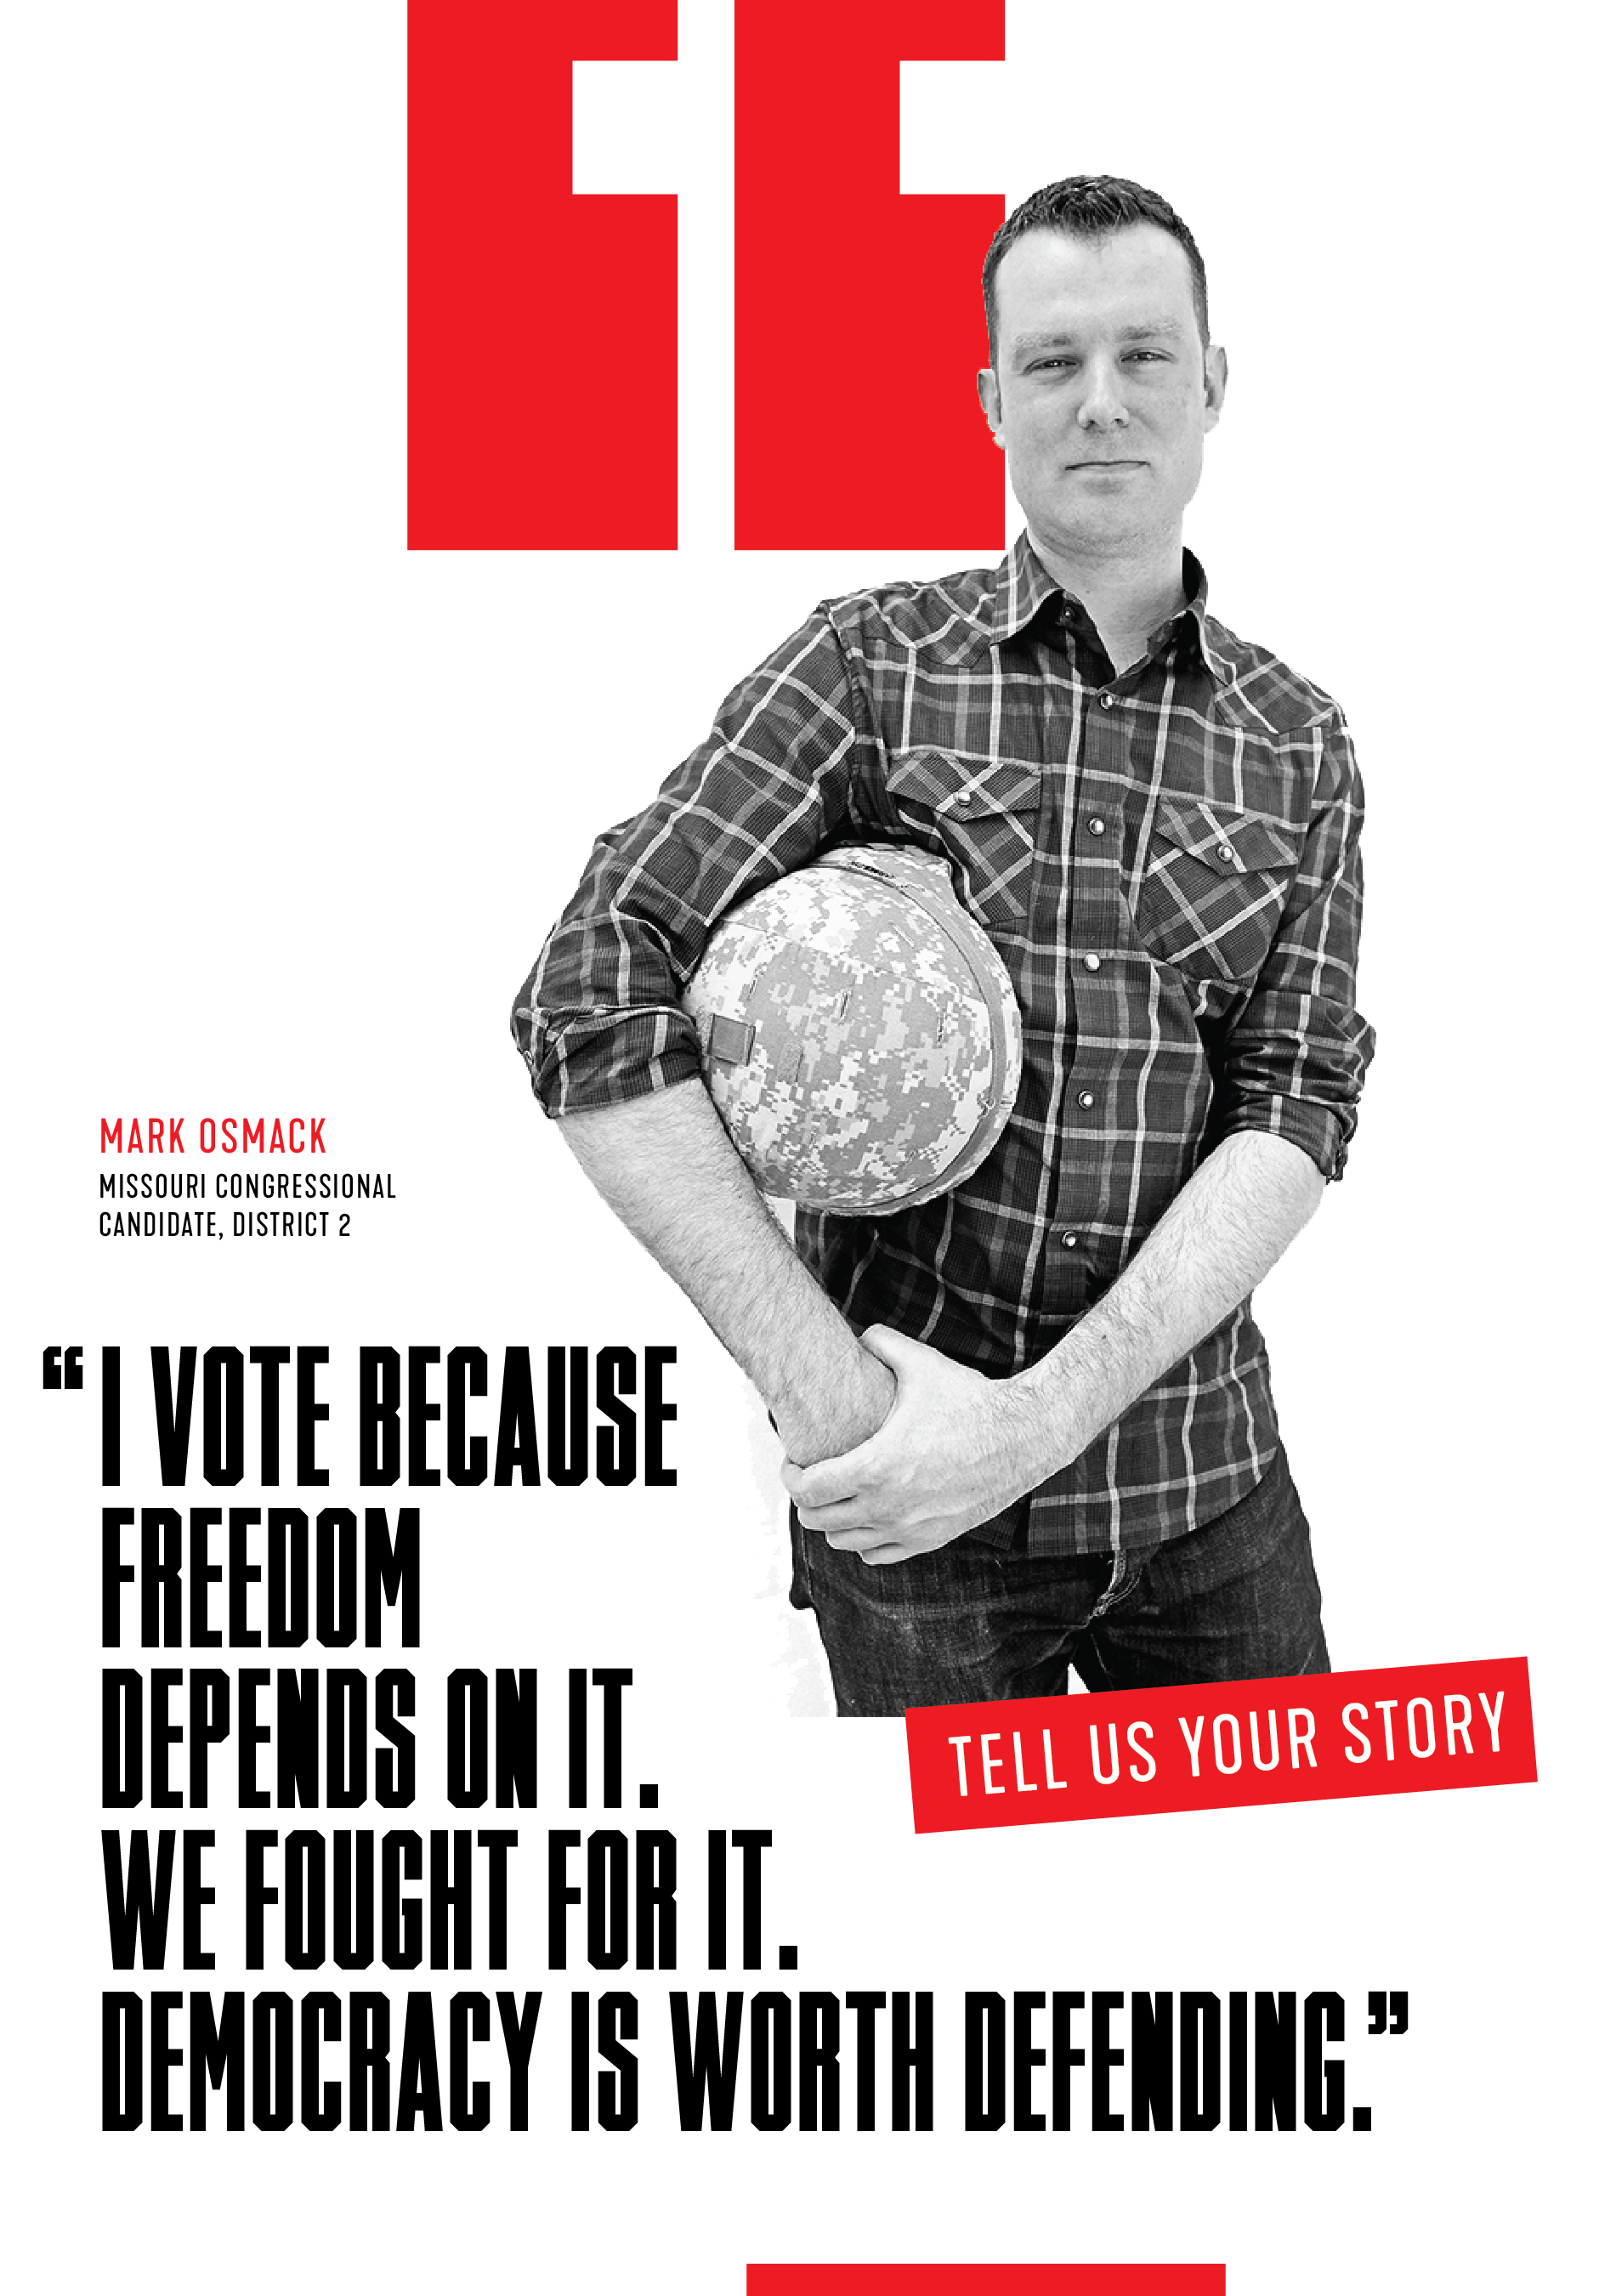 """Mark Osmack: """"I vote because freedom depends on it. We fought for it. Democracy is worth defending."""""""